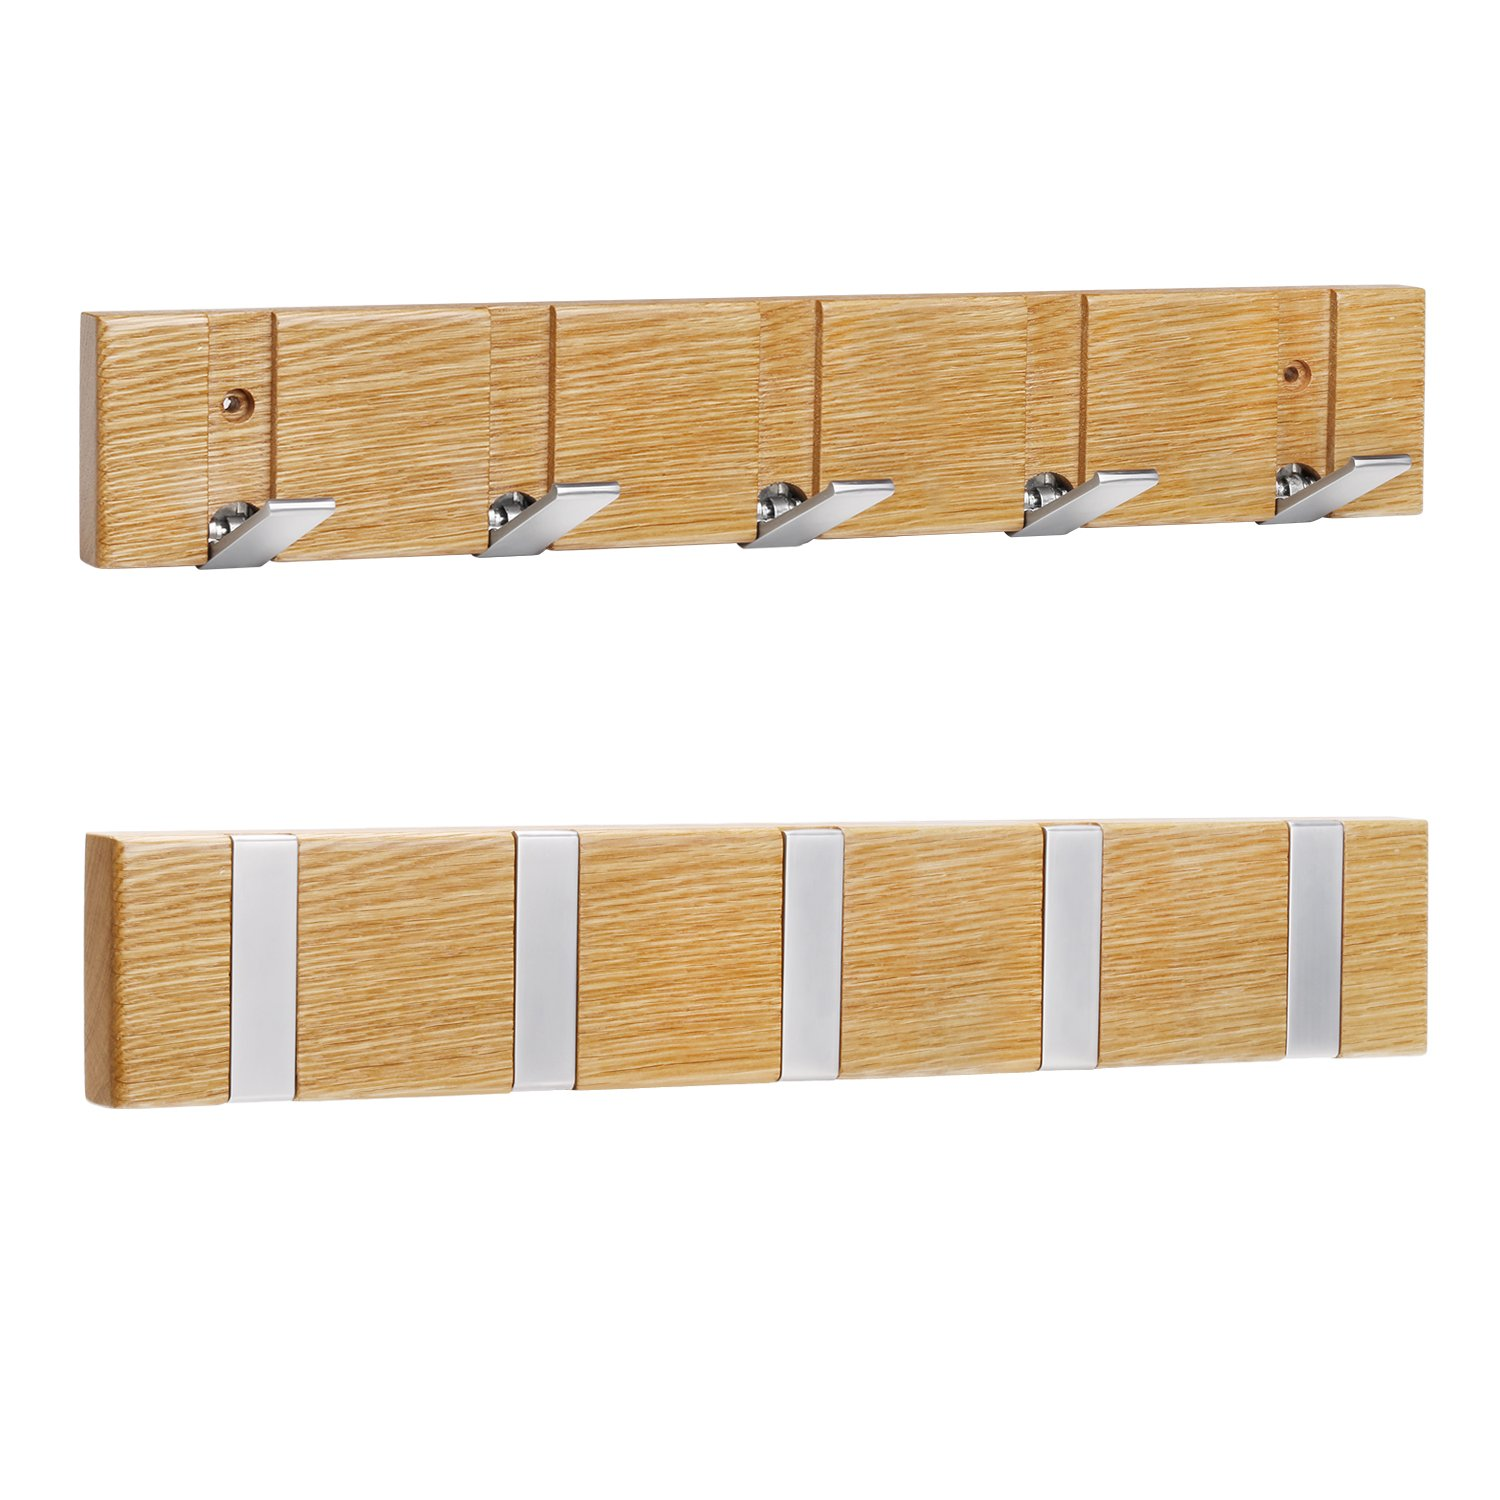 WiHoo Coat Rack Wall Mounted, Coat Hooks Wall Mounted with 5 Folding Hooks with Oak Solid Wood Body and Zinc-nickel Alloy Coat Hooks for Your Office Room, Bedroom, Bedroom and Bathroom